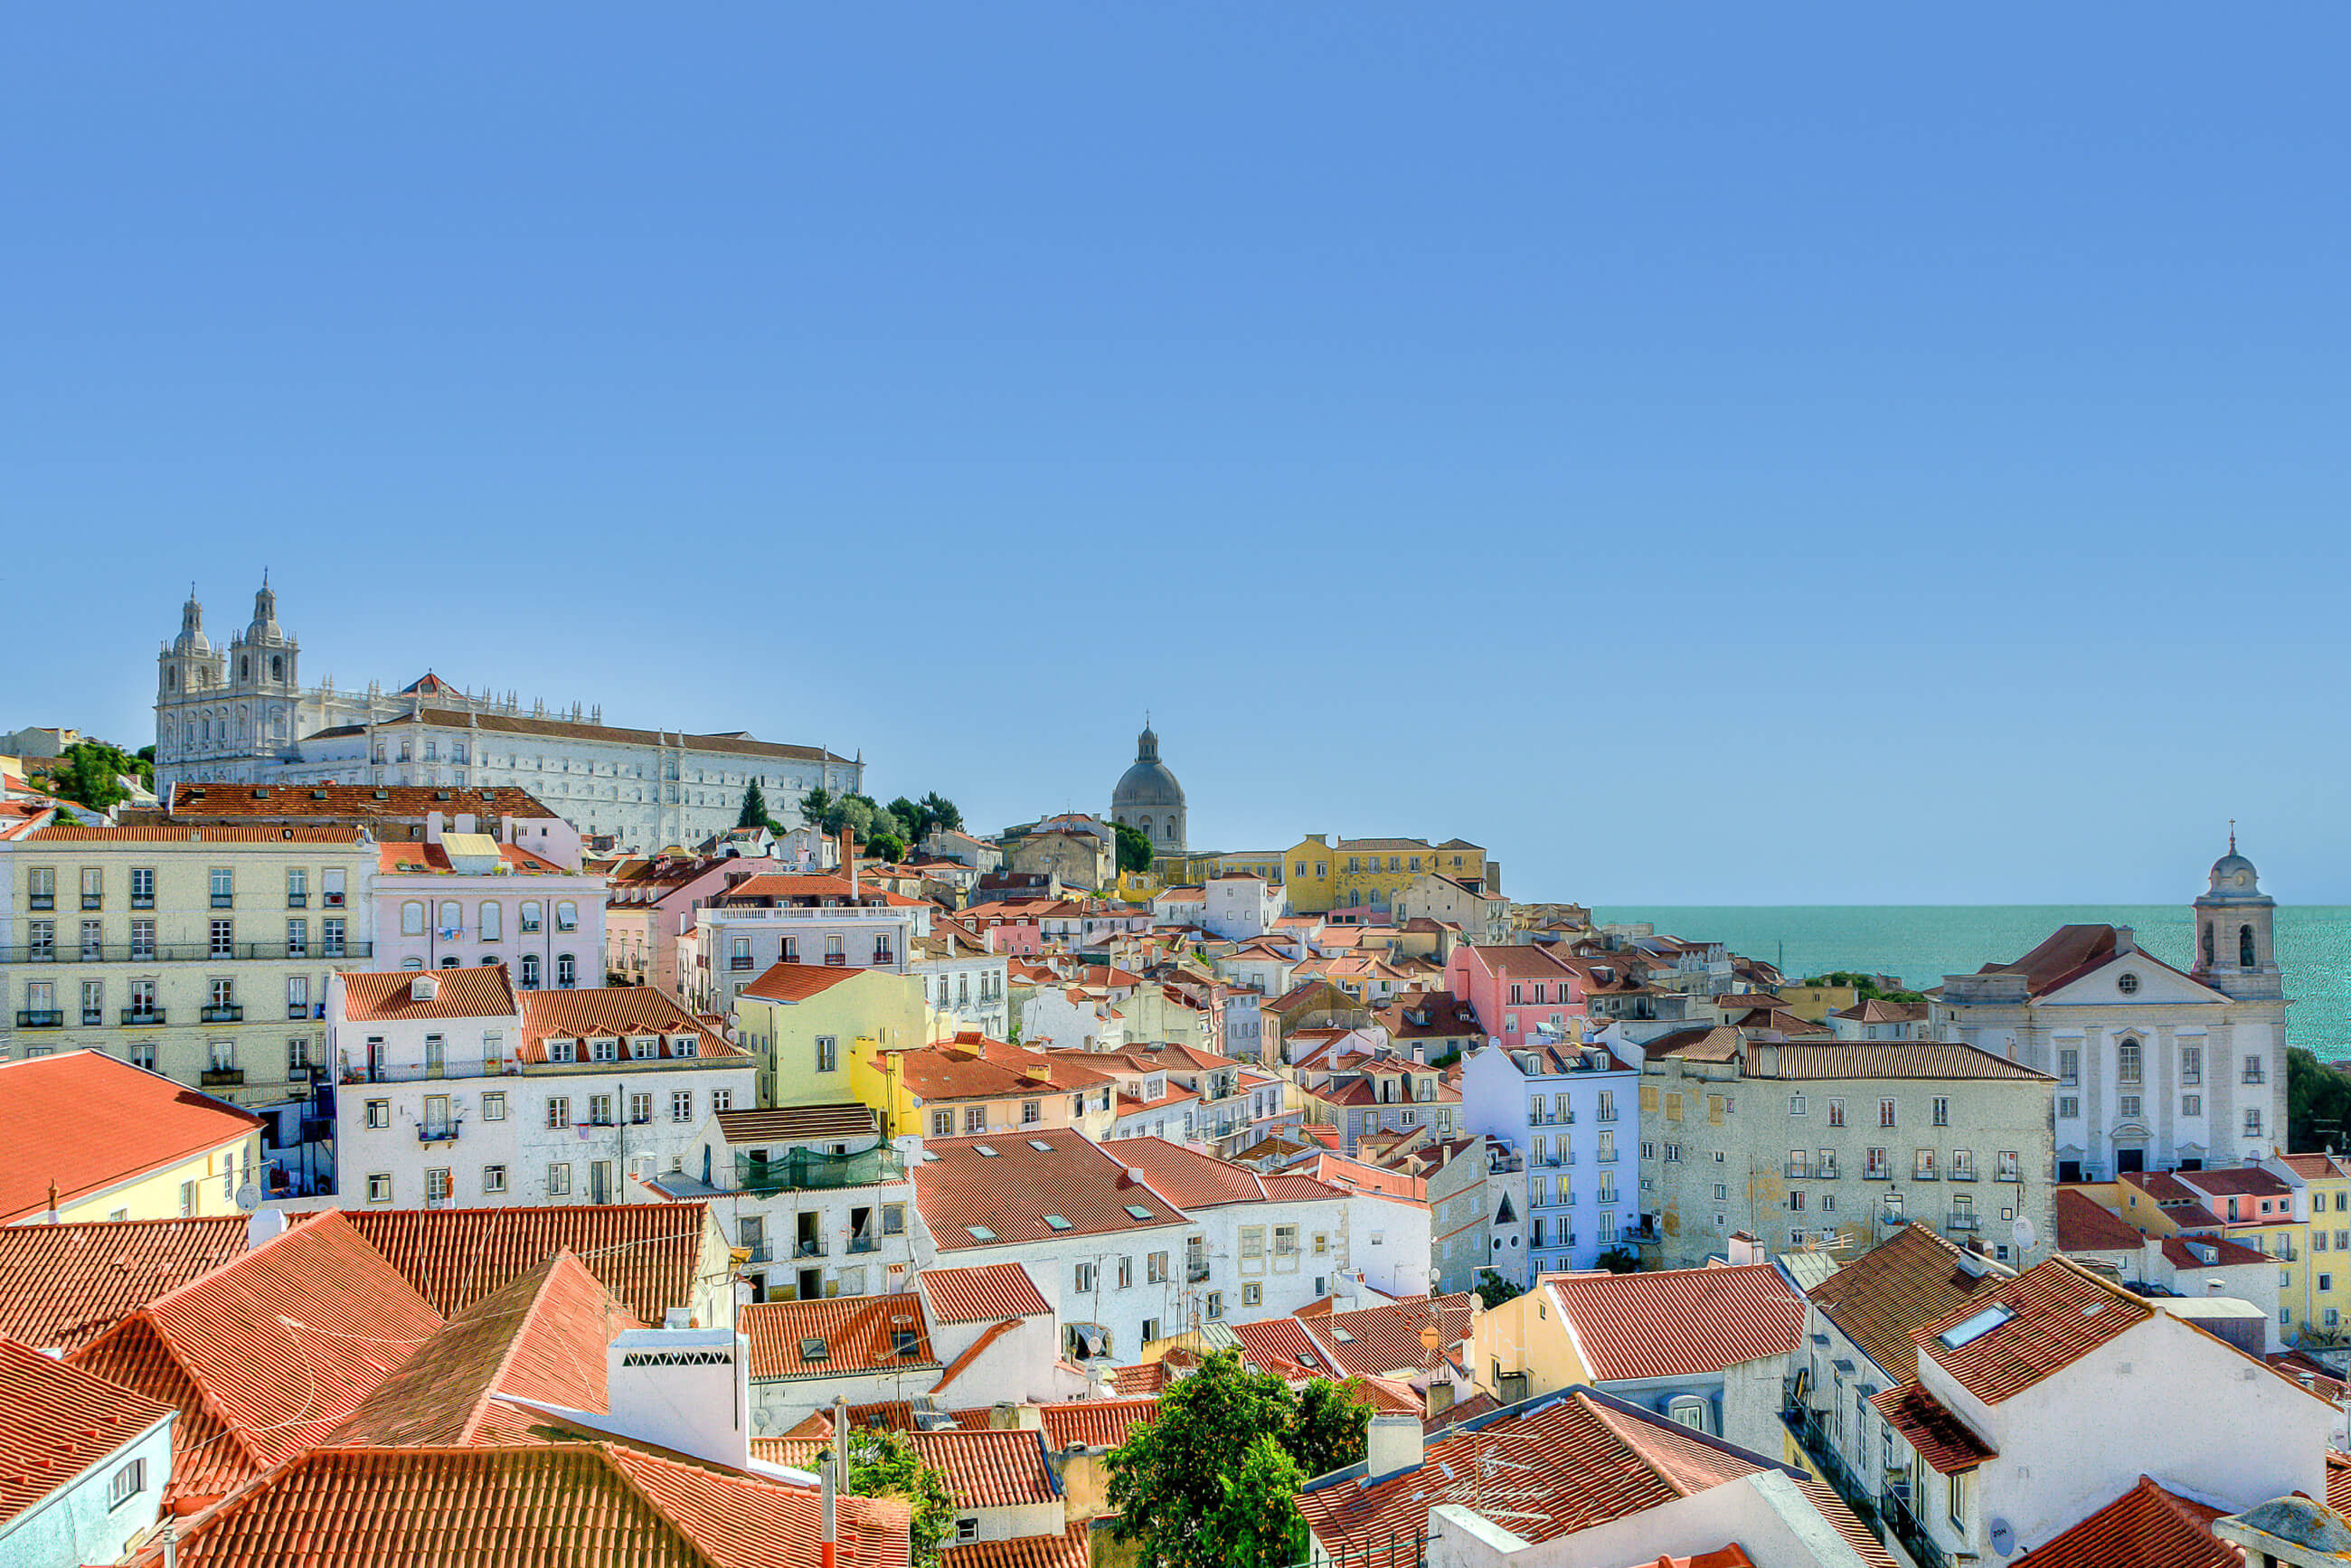 https://bubo.sk/uploads/galleries/16329/city-houses-lisbon-9253.jpg